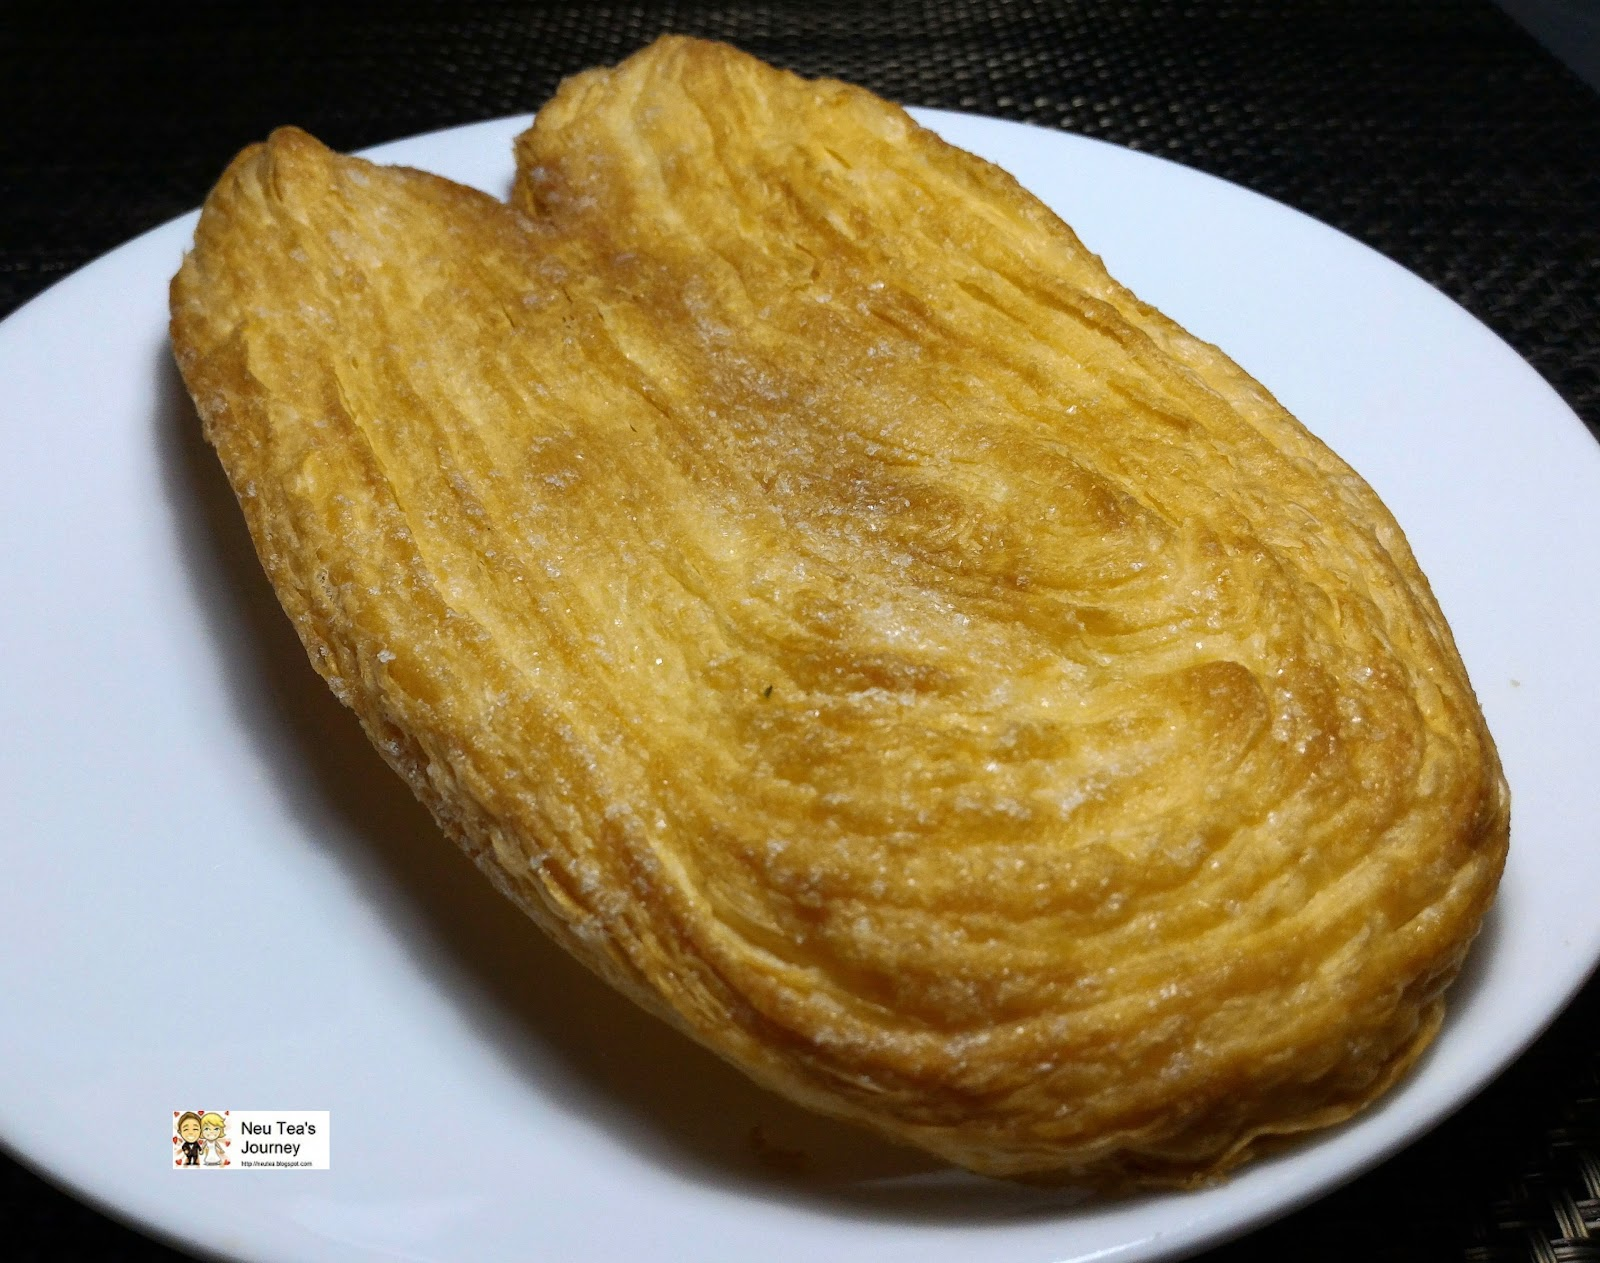 Palm Leaf / Japanese Biscuit from Verbena Bakery